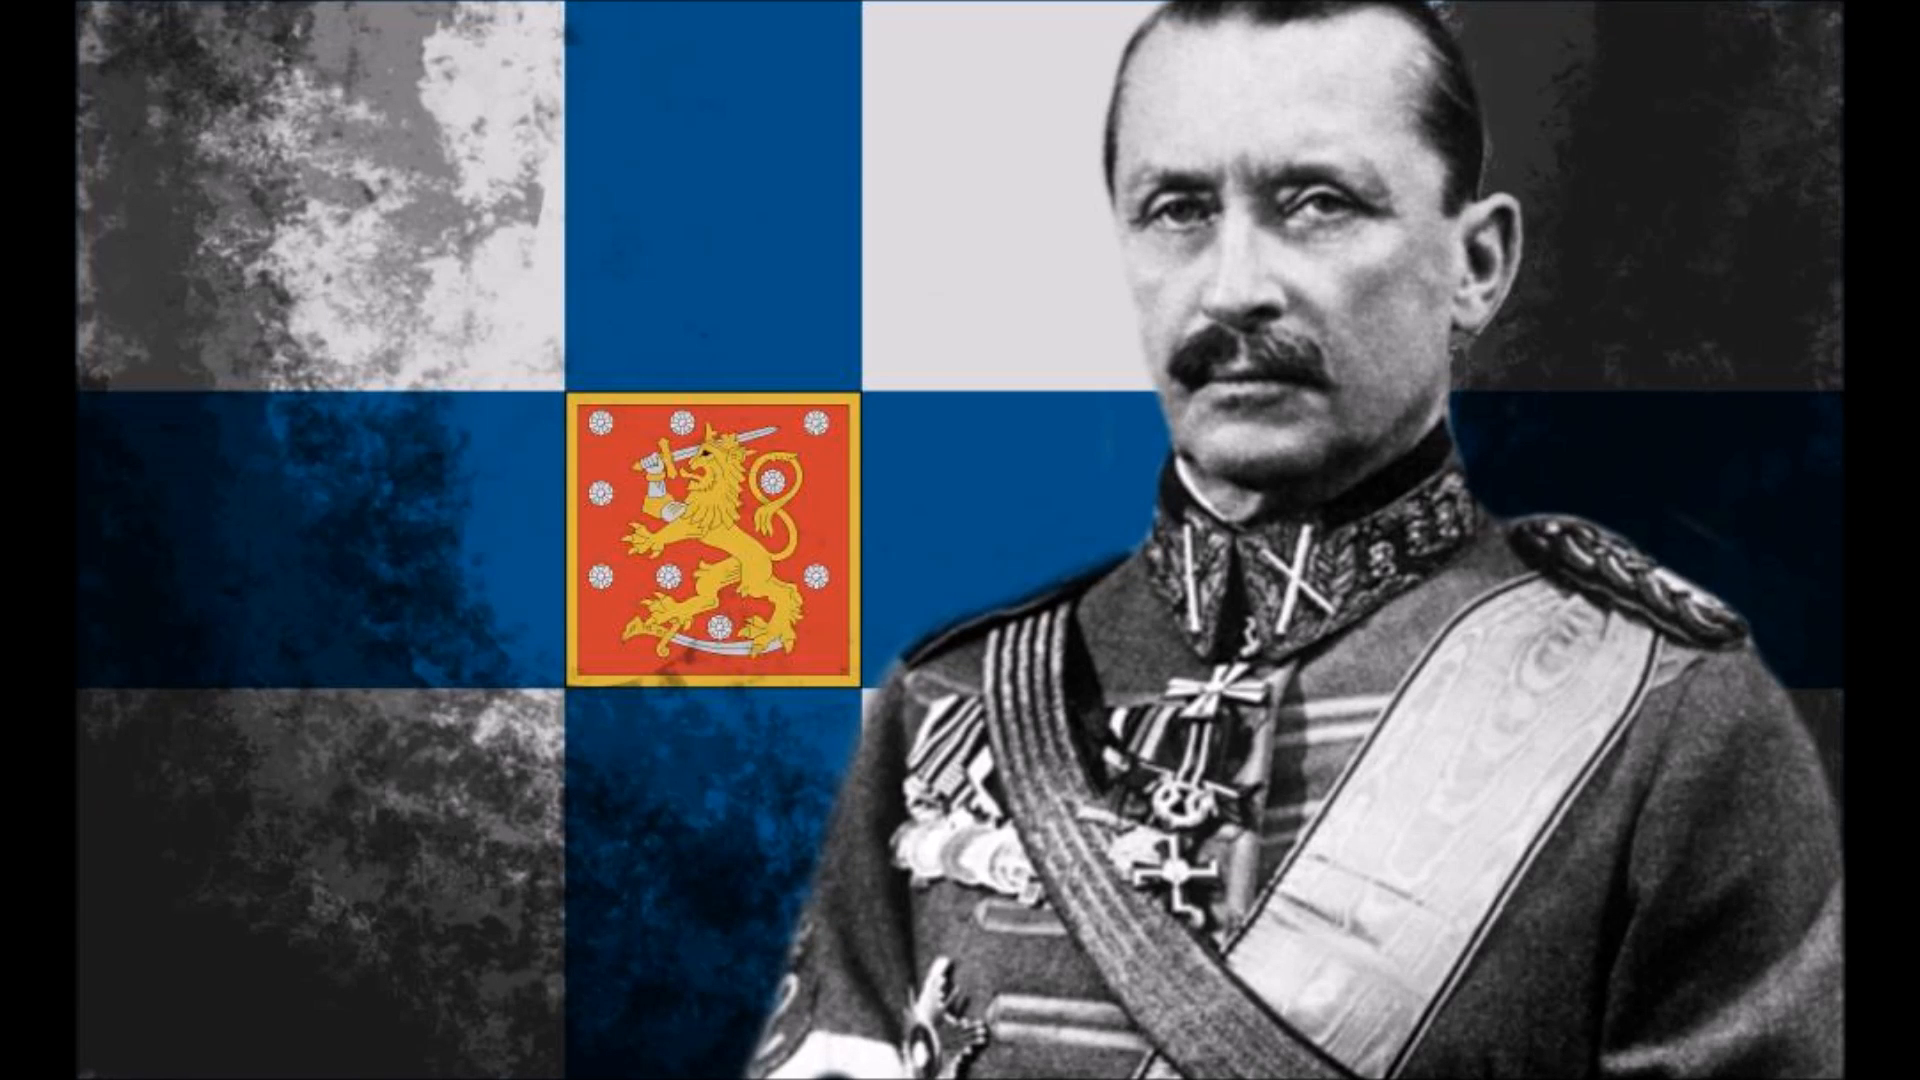 Vapaussoturin Valloituslaulu (Marching Song of the Finnish White Army)